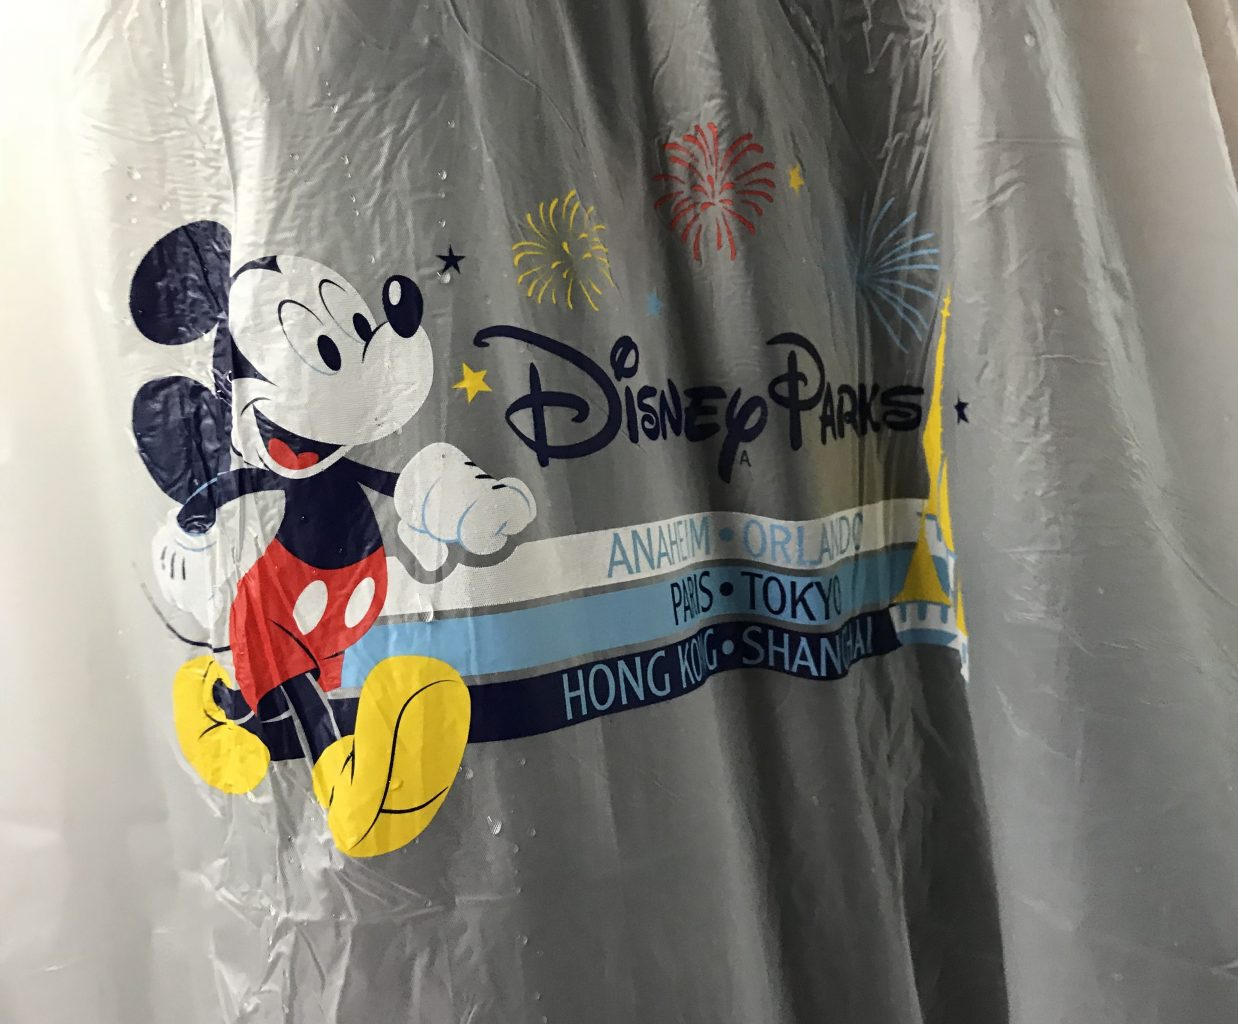 Disney Parks rain poncho can be a fun souvenir for Disney in the rain.